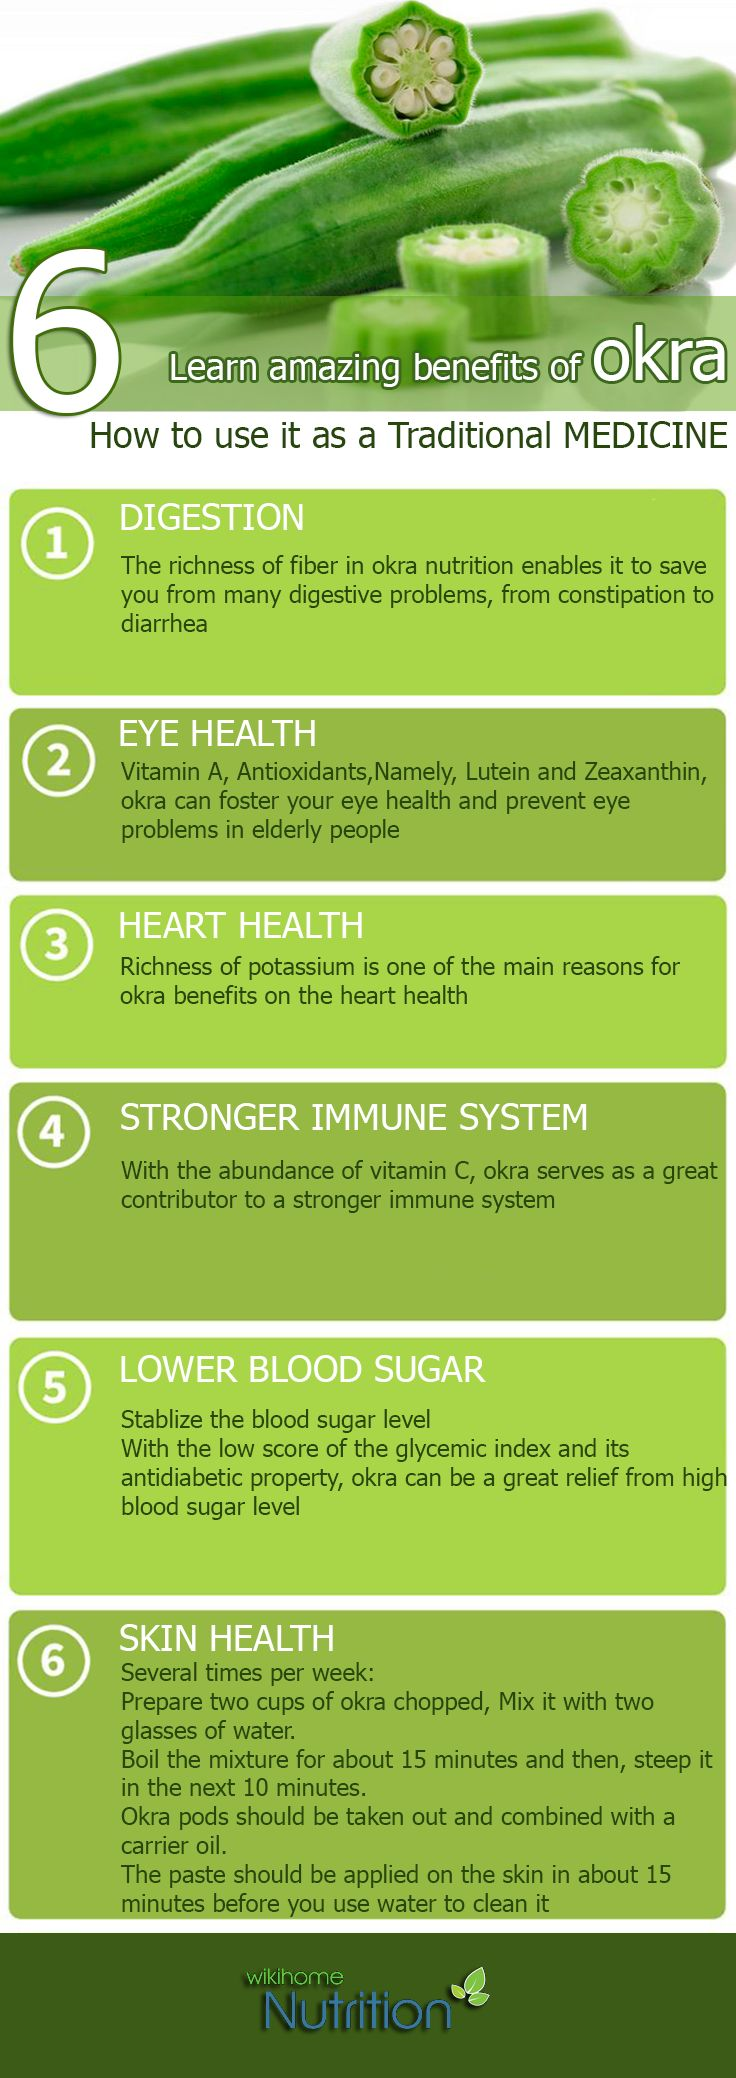 Health Benefits of Okra:is actually a star among herbal medicine :#Digestion #Eyes #Skin health #Immunity # Lower Blood Sugar #Heart Health